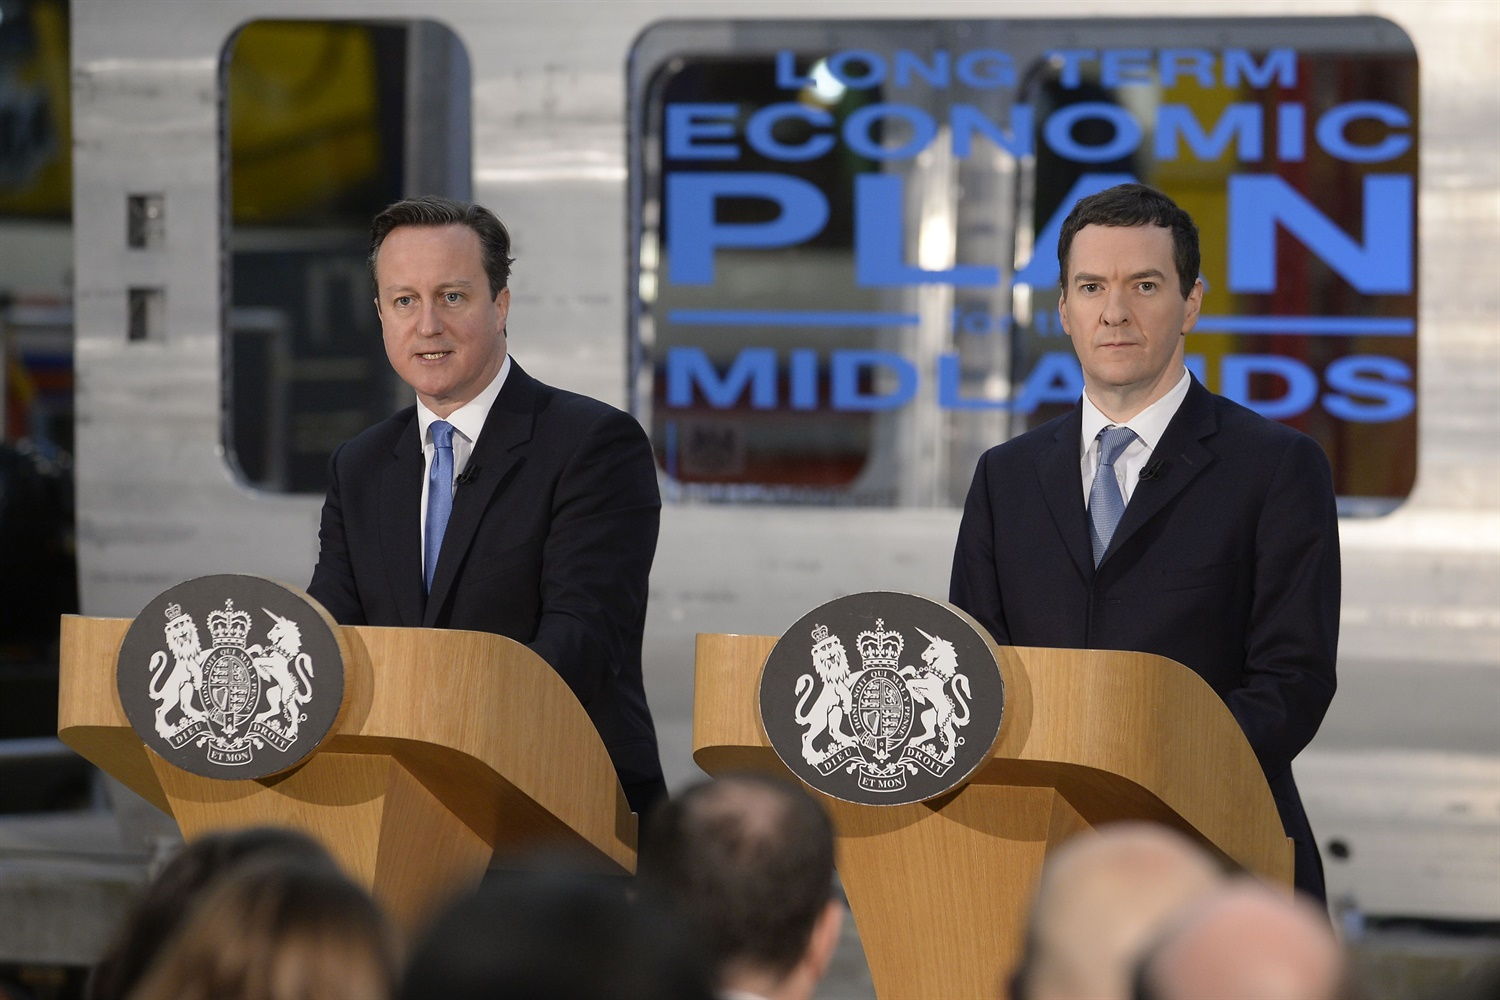 NR to look 'seriously' at extending electrification in the Midlands – Osborne